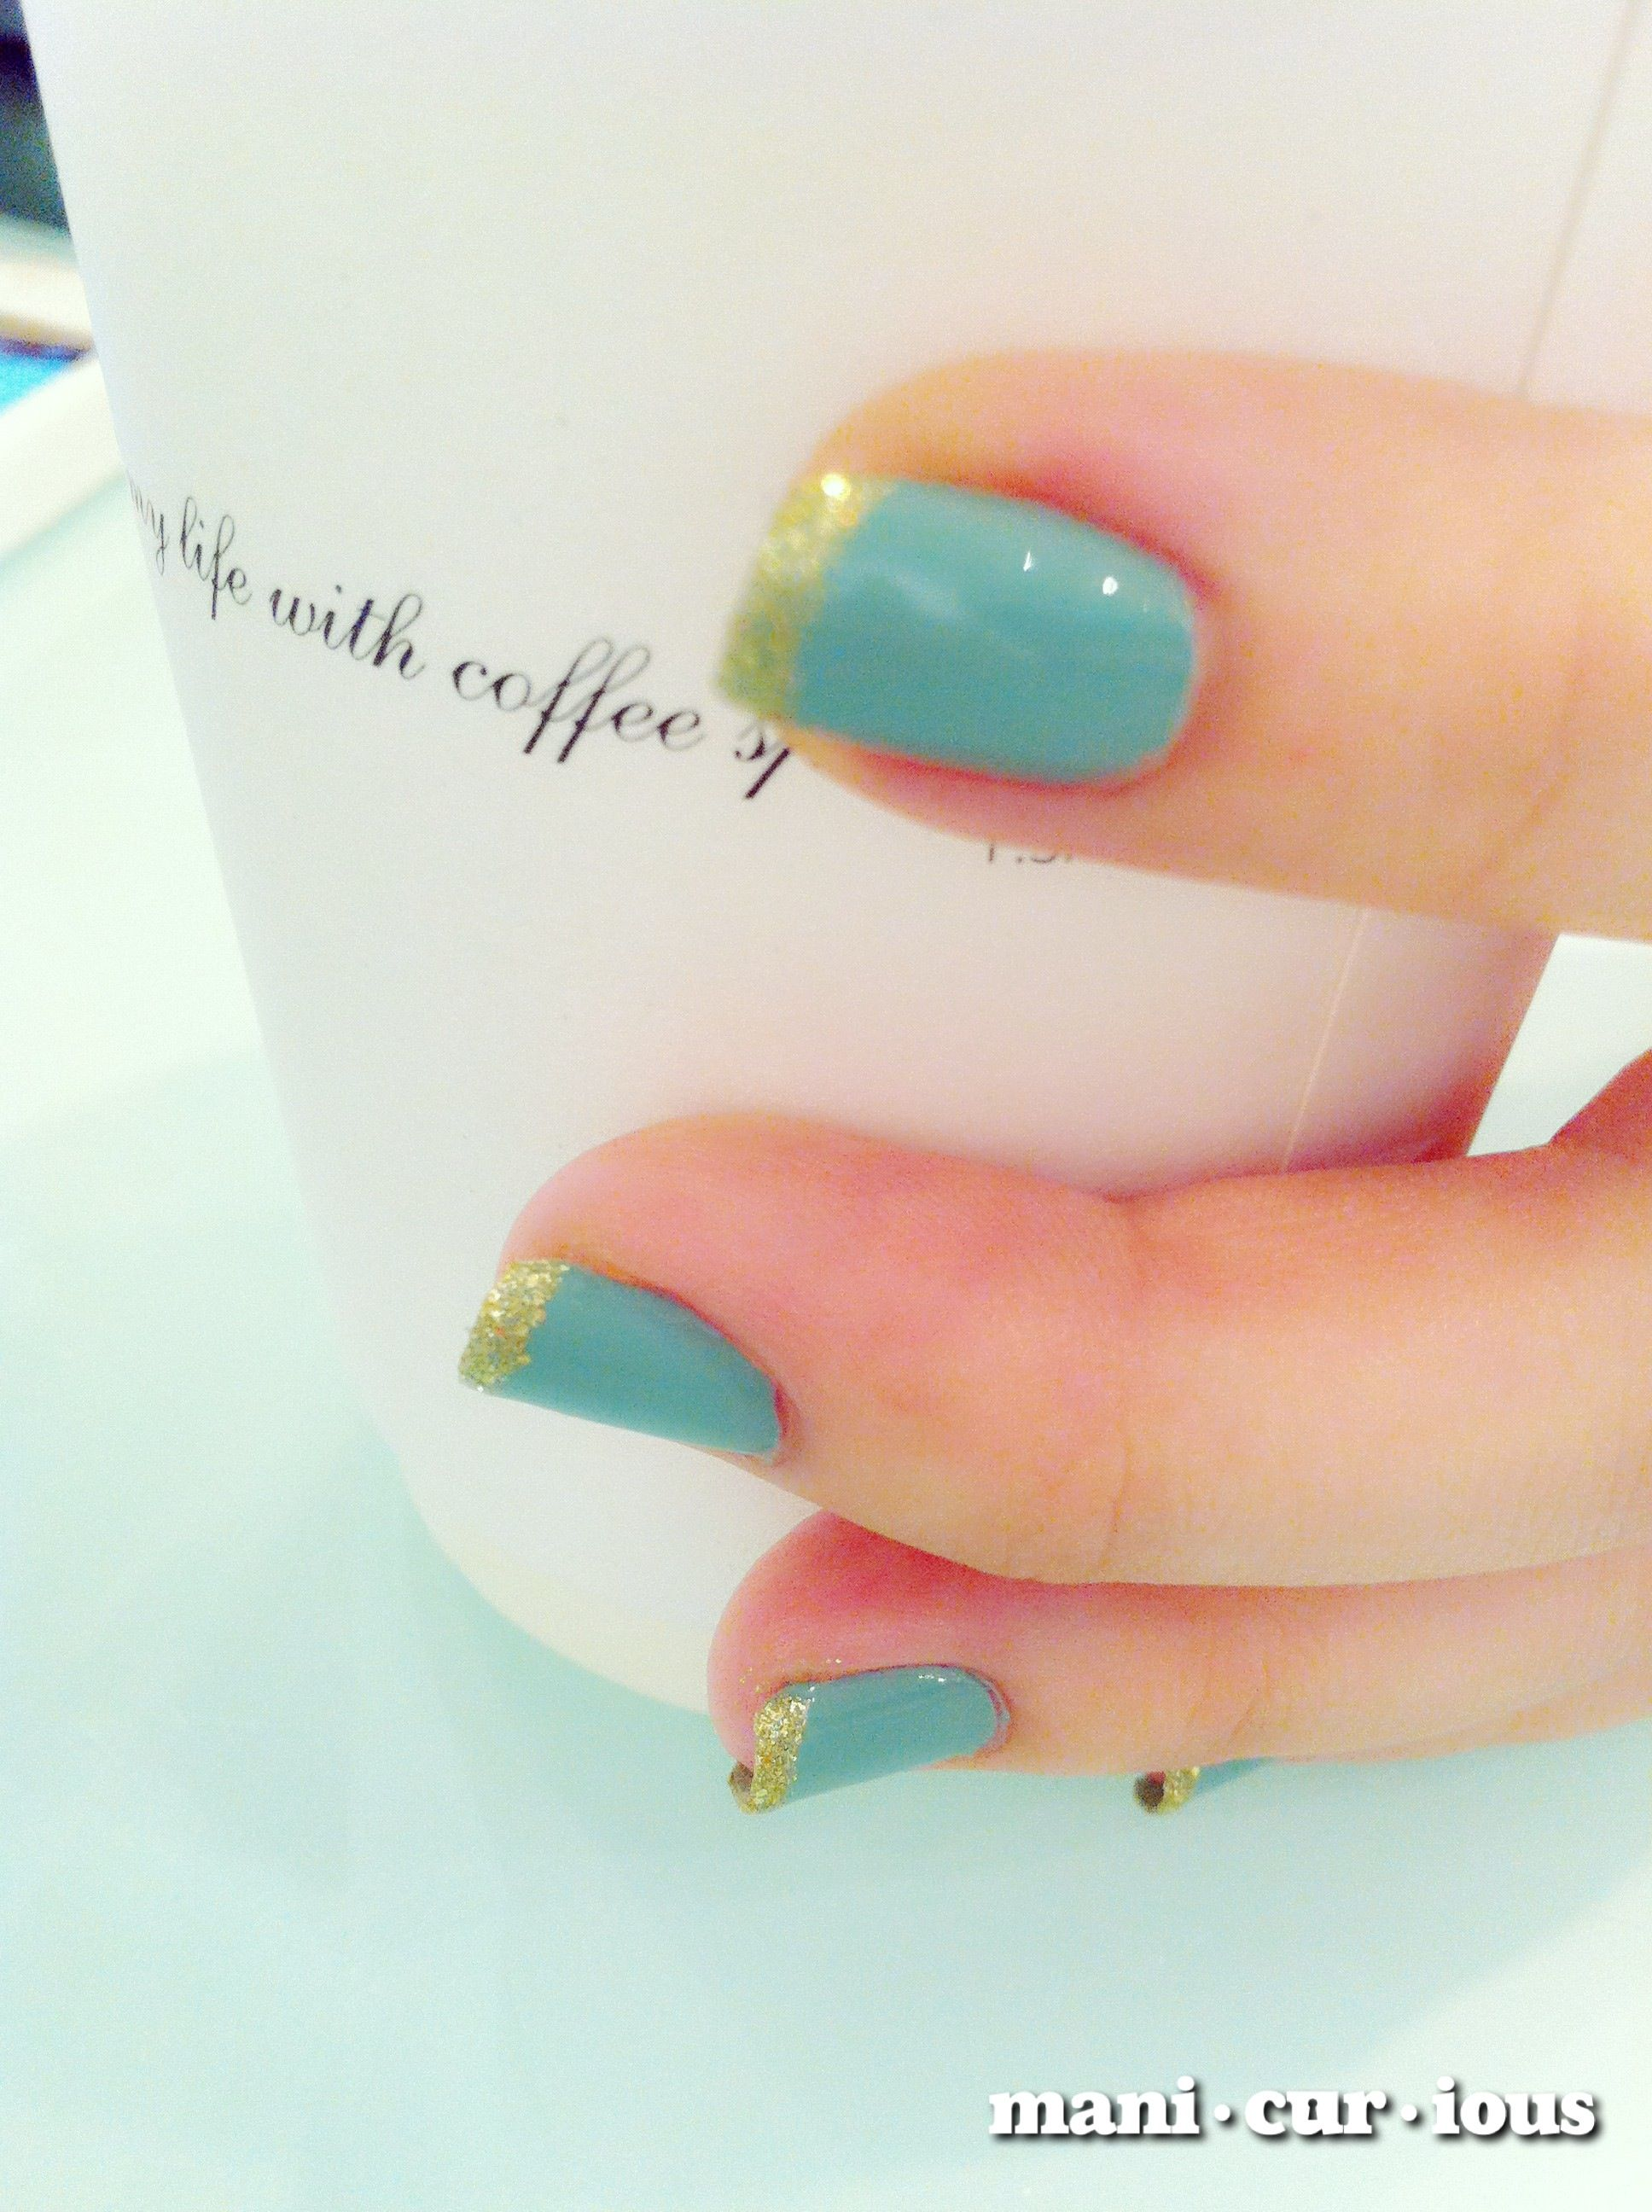 going a little crazy with french manicures!